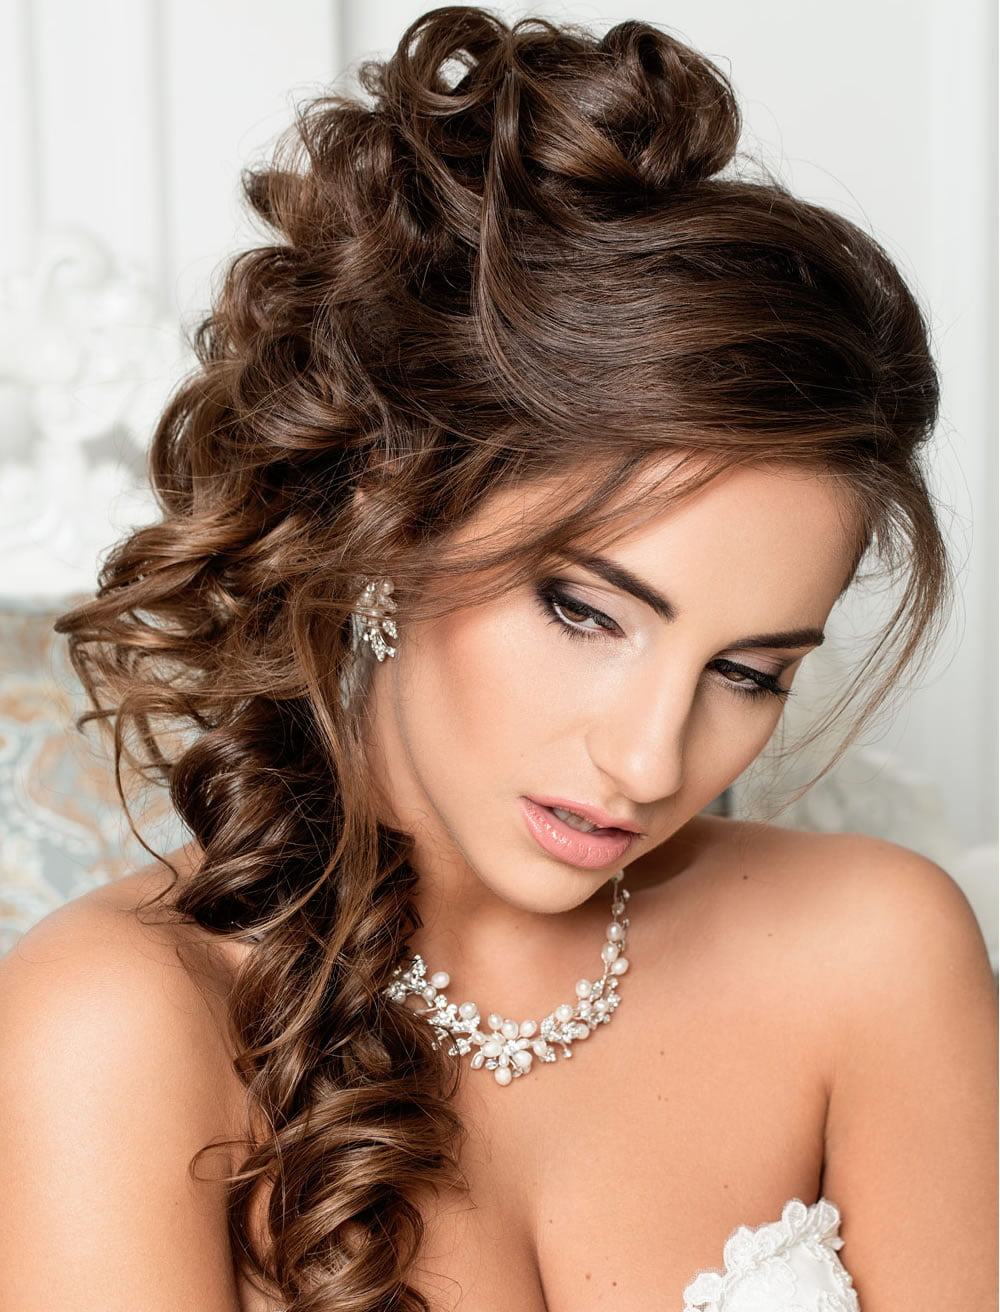 Very stylish wedding hairstyles for long hair 2018 2019 hairstyles wedding hairstyles for long hair summer 2018 2019 junglespirit Images